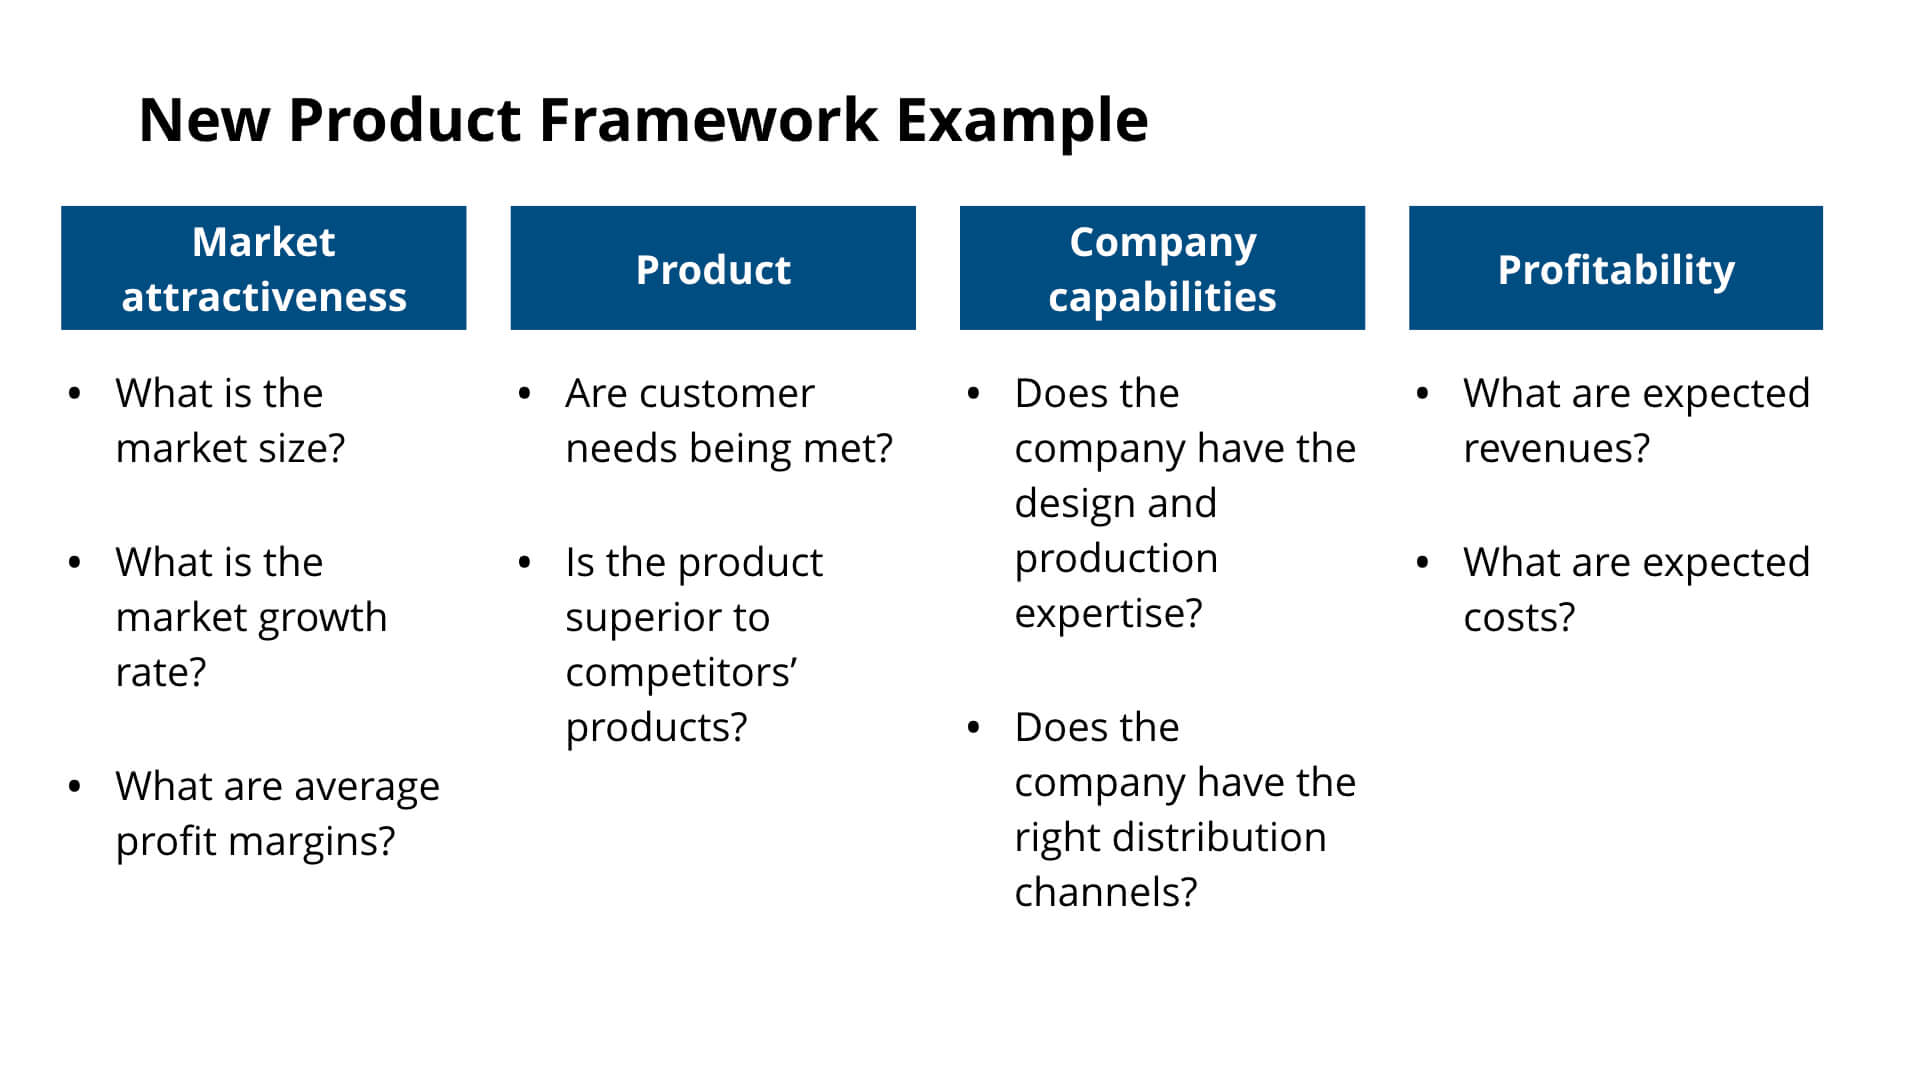 New Product Framework Example